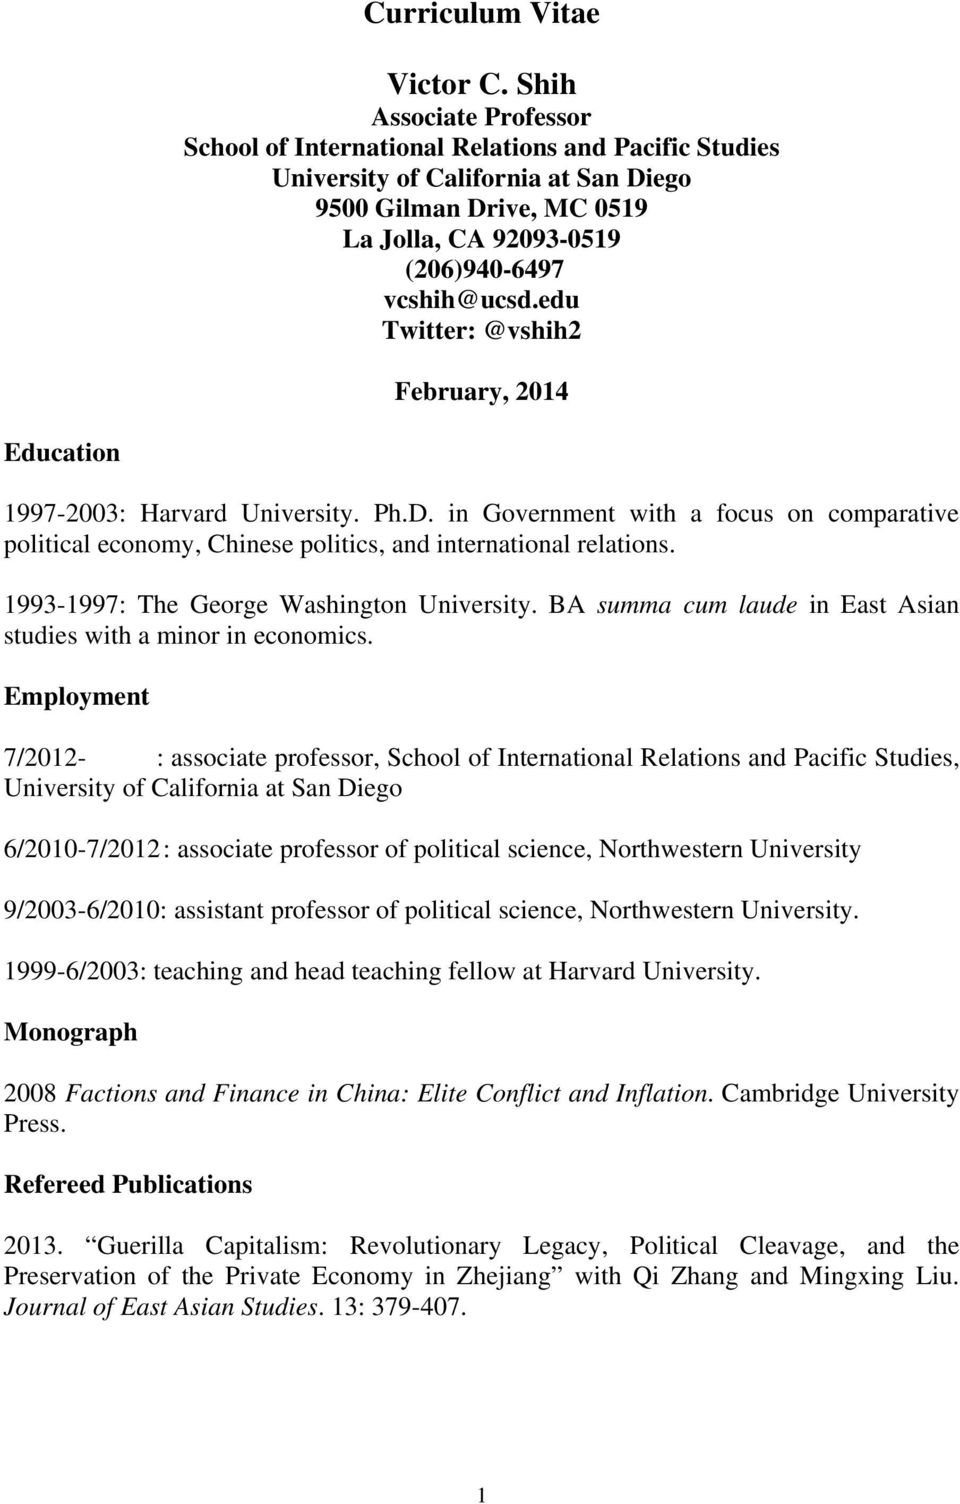 edu Twitter: @vshih2 February, 2014 Education 1997-2003: Harvard University. Ph.D. in Government with a focus on comparative political economy, Chinese politics, and international relations.